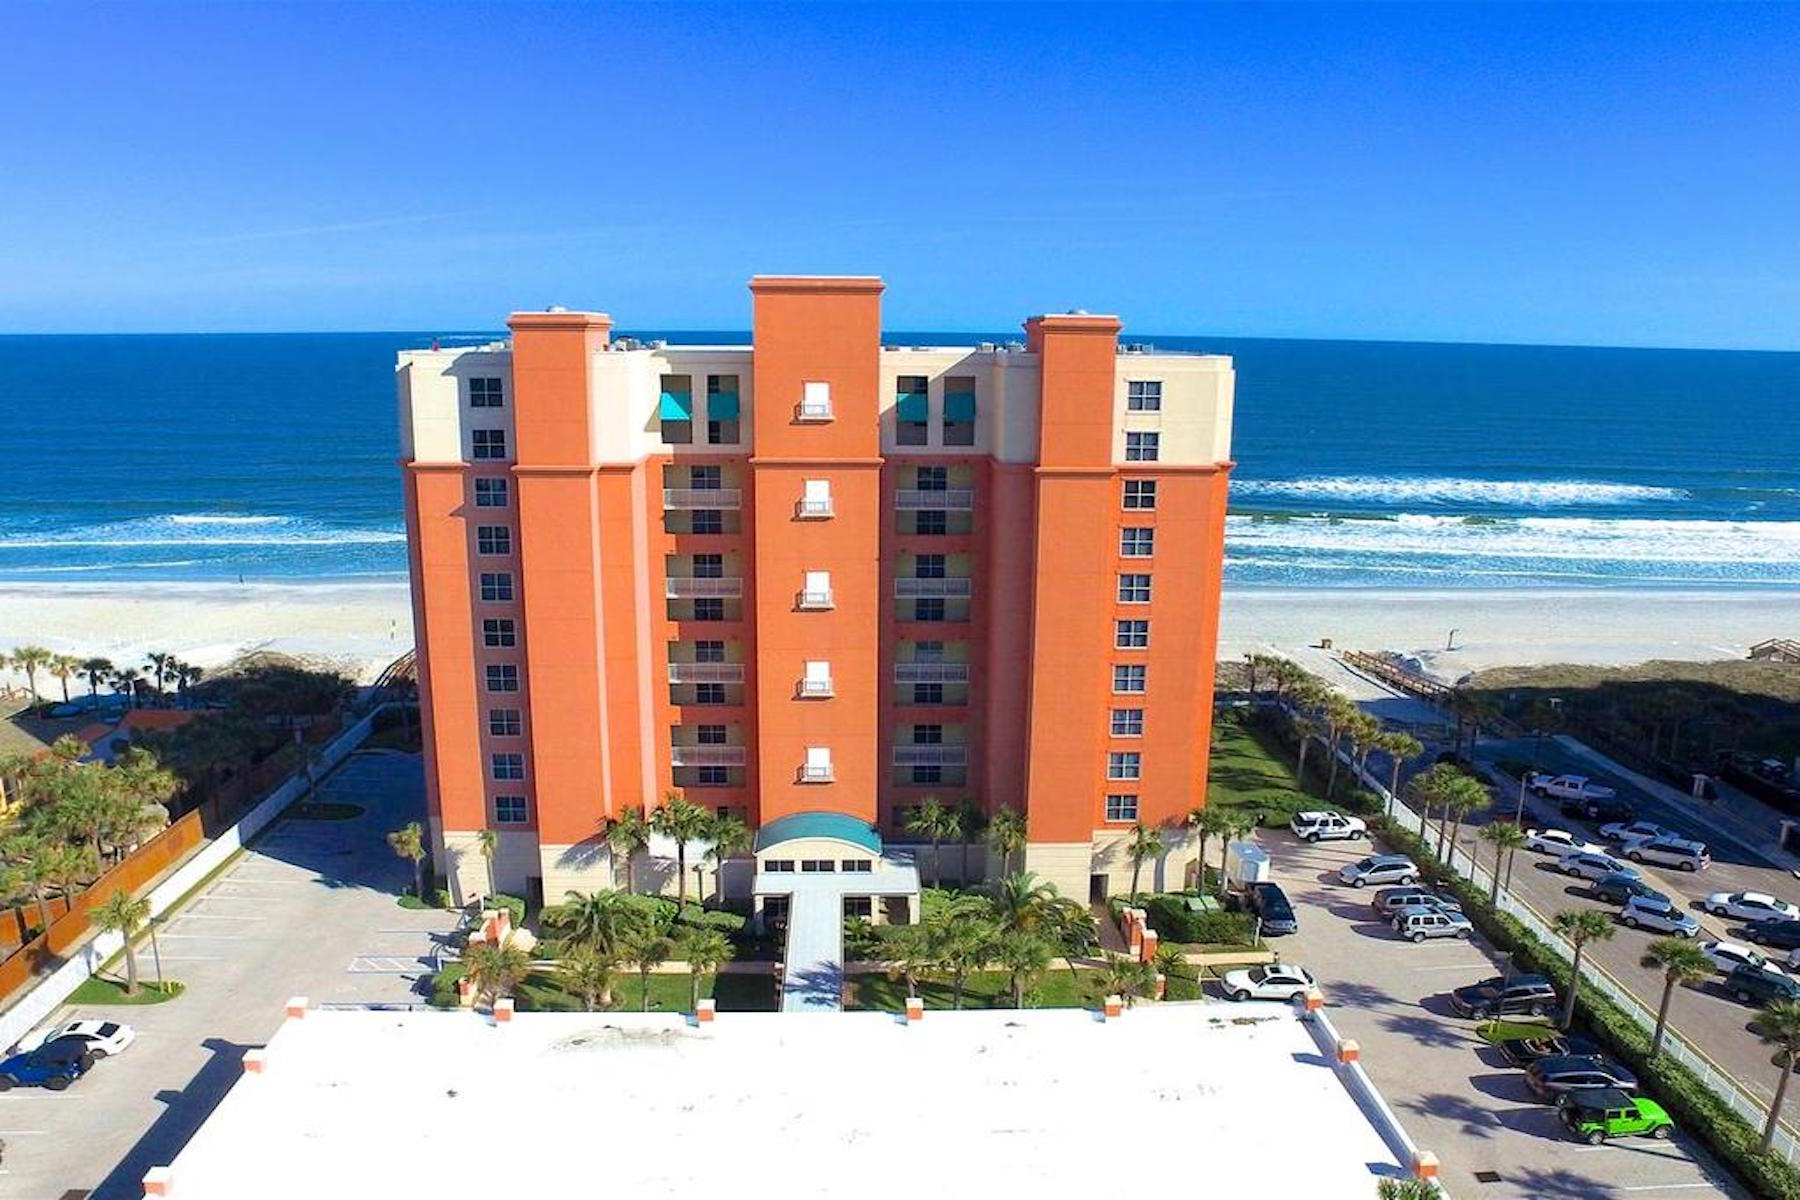 Condominium for Sale at Oceania Oceanfront 1415 N 1st Street Unit 305 Jacksonville Beach, Florida, 32250 United States